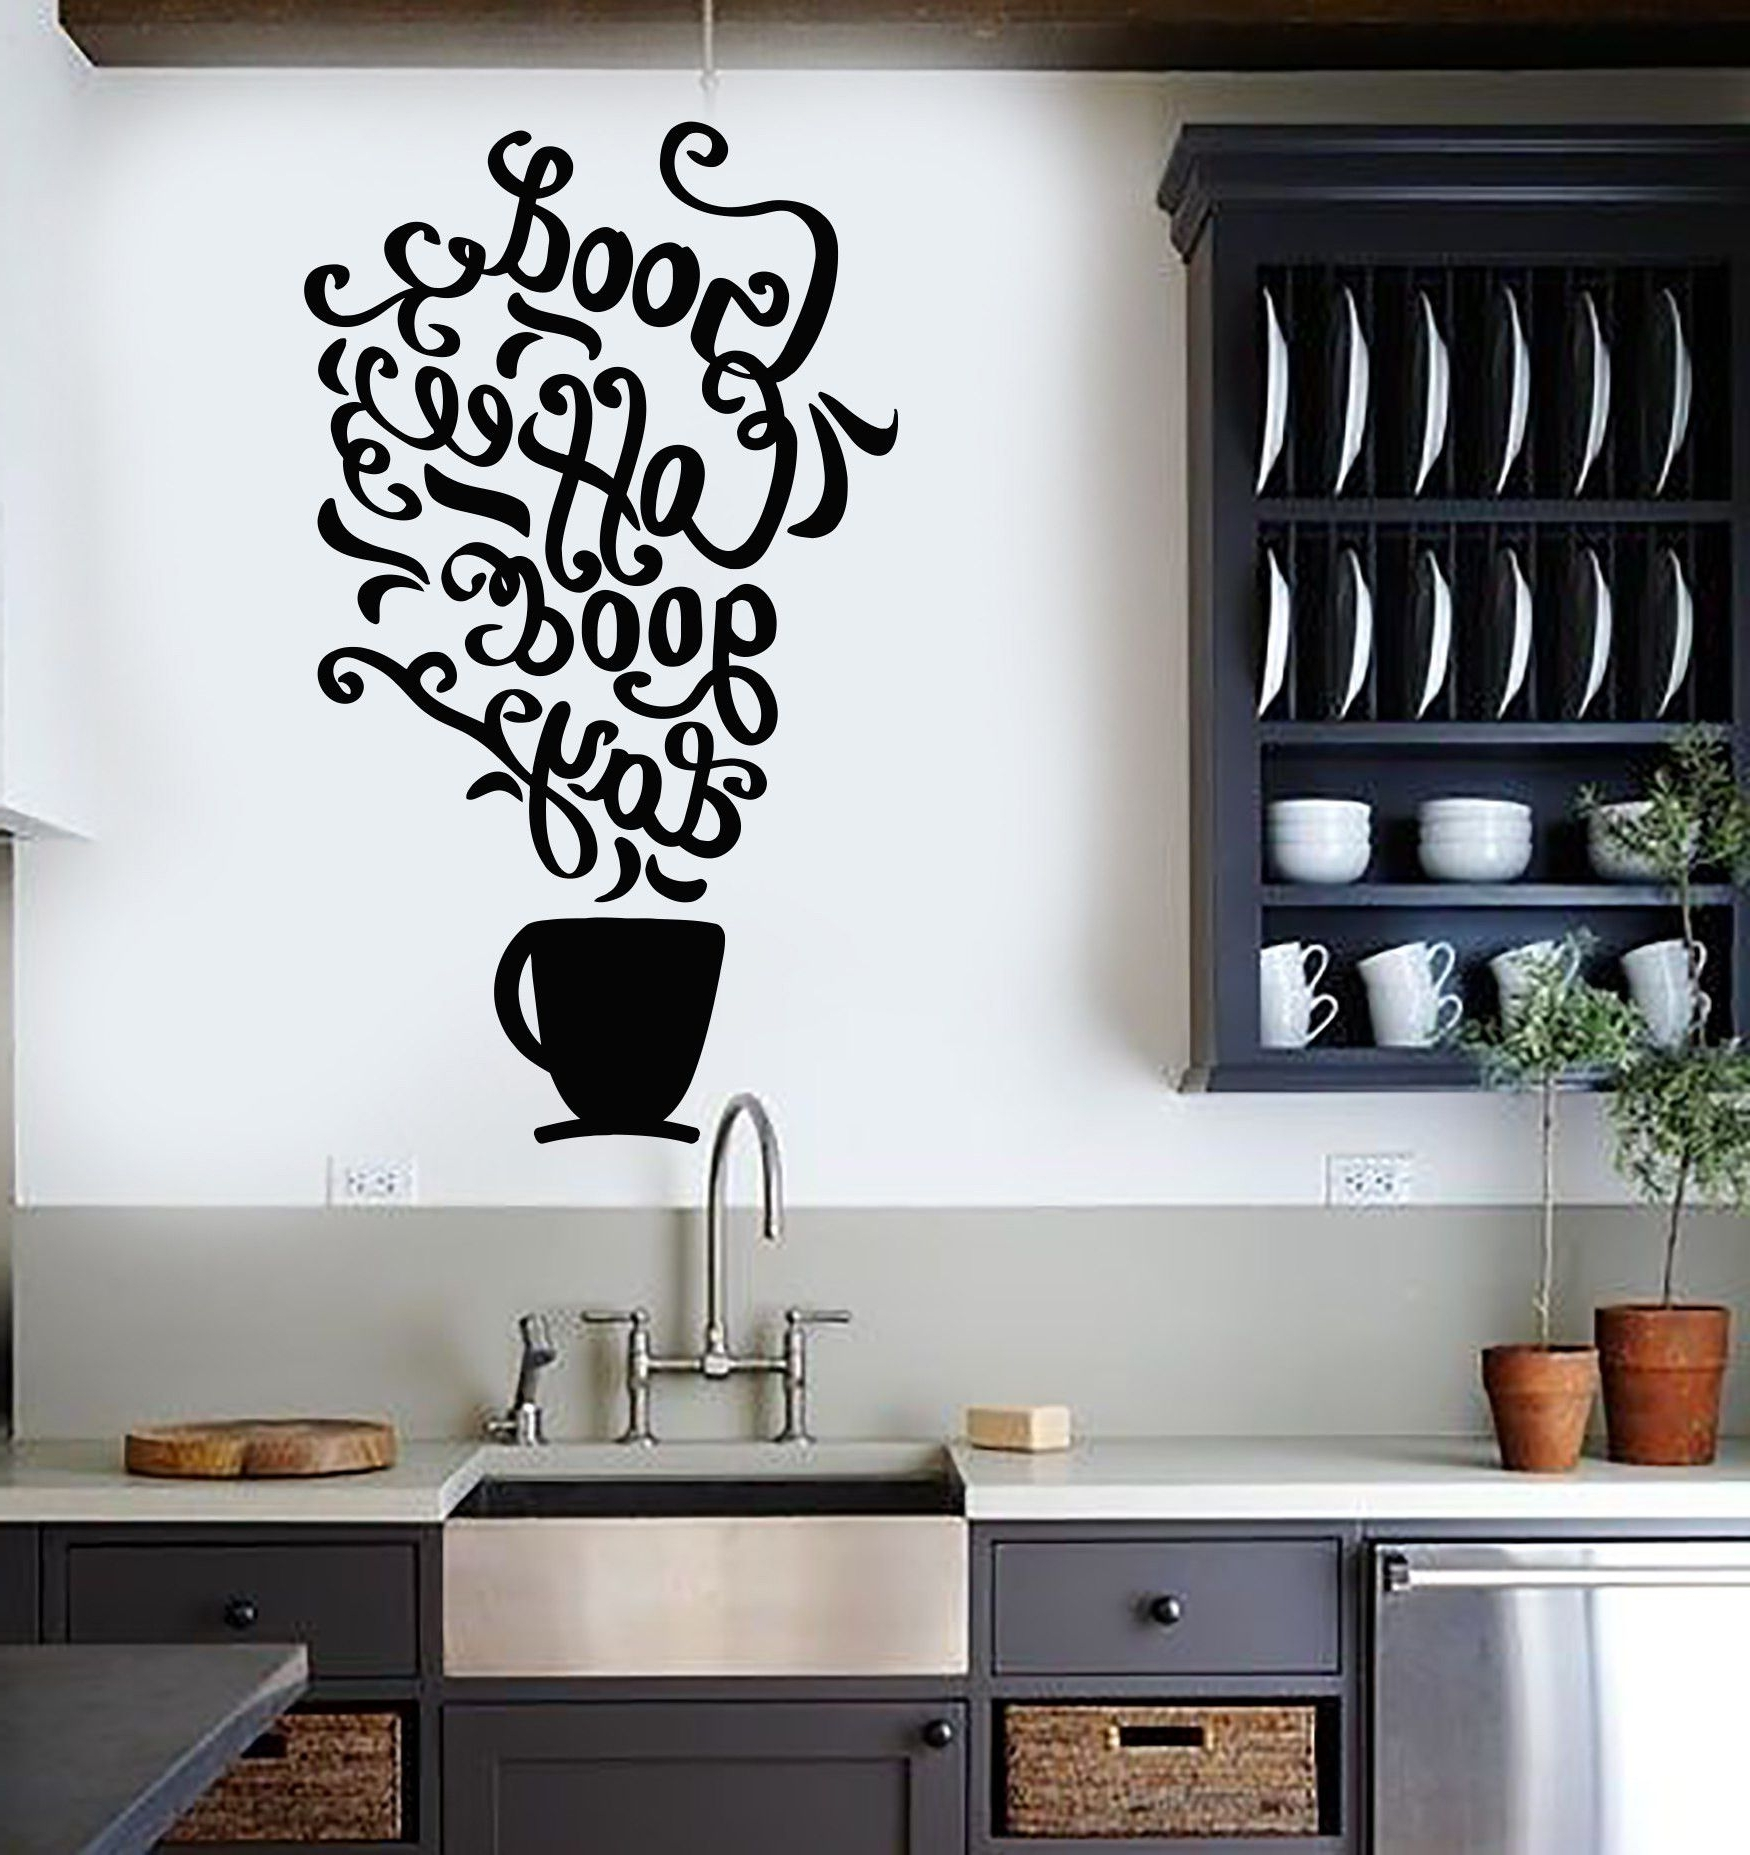 Vinyl Wall Decal Quote Coffee Kitchen Shop Restaurant Cafe Art With Popular Vinyl Wall Accents (View 12 of 15)